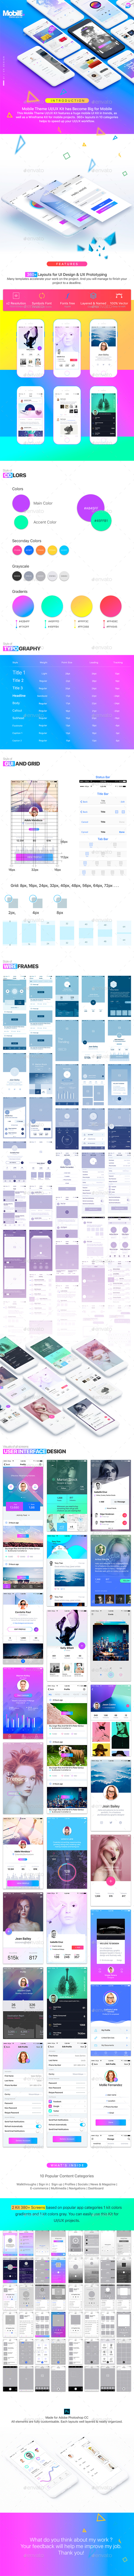 Mountify UI Kit - Sketch Version (User Interfaces)